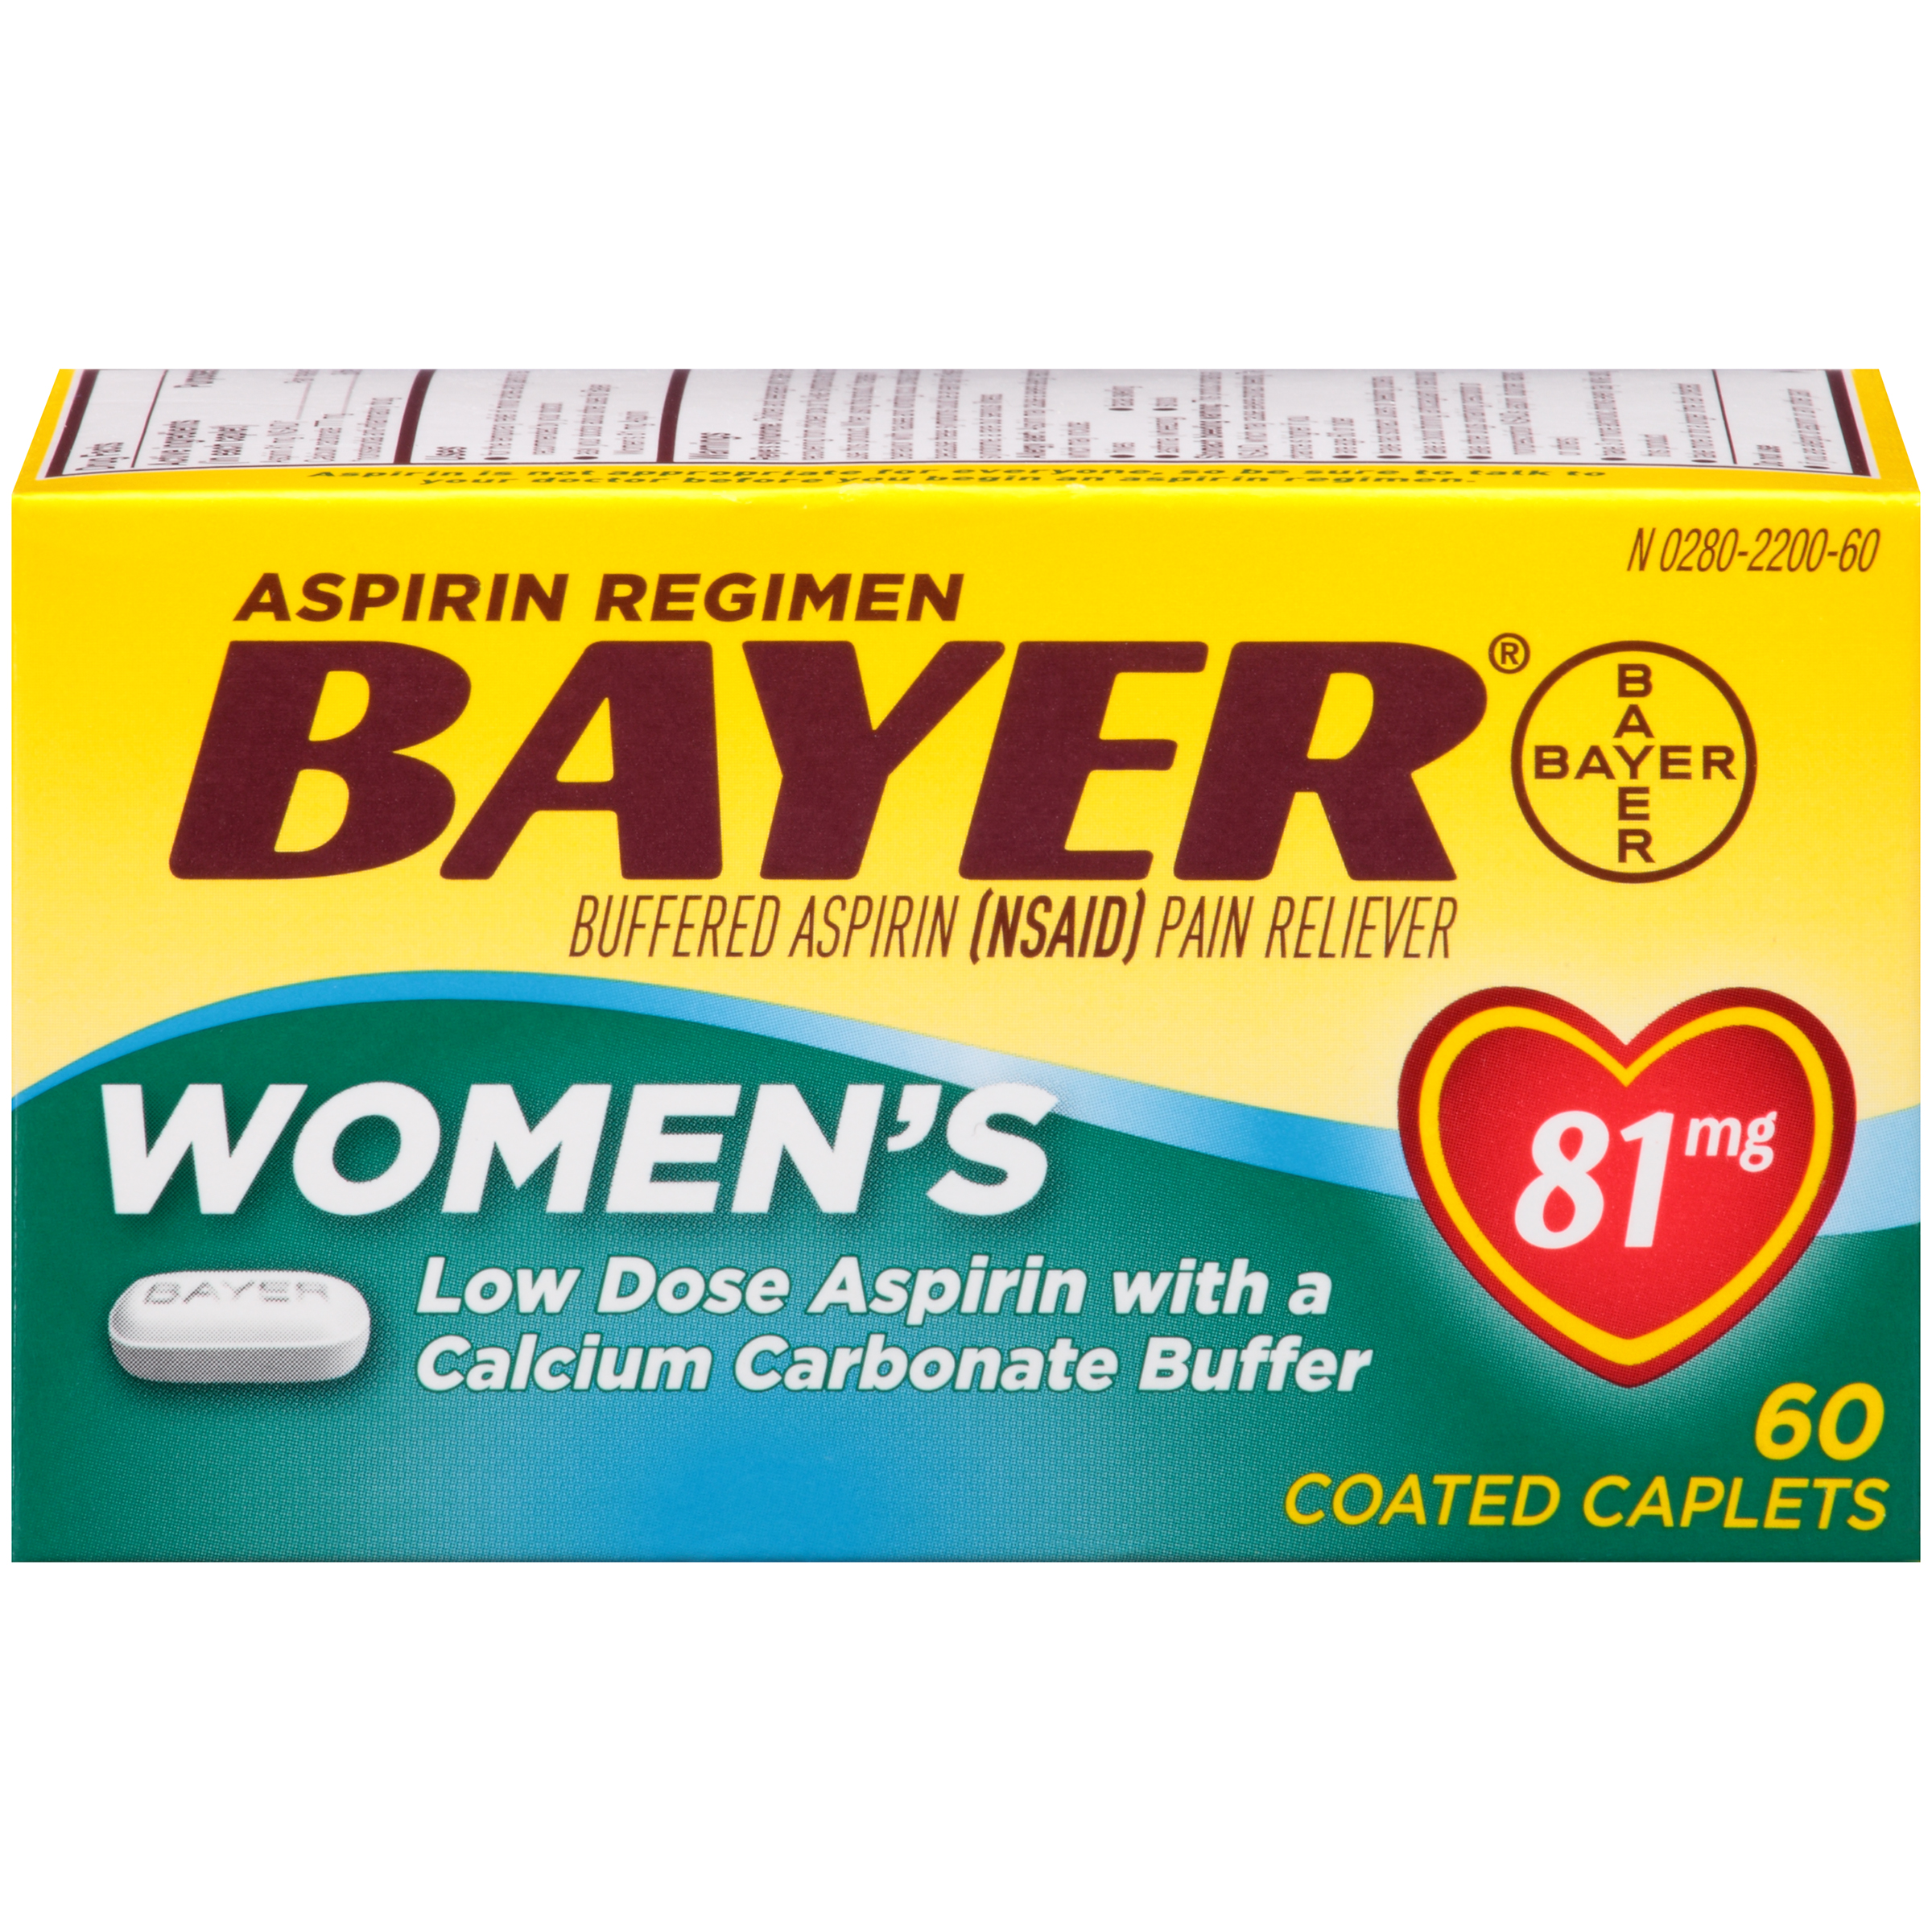 Bayer Women's Low Dose Aspirin Regimen Pain Reliever Coated Tablets, 81mg, 60 Ct